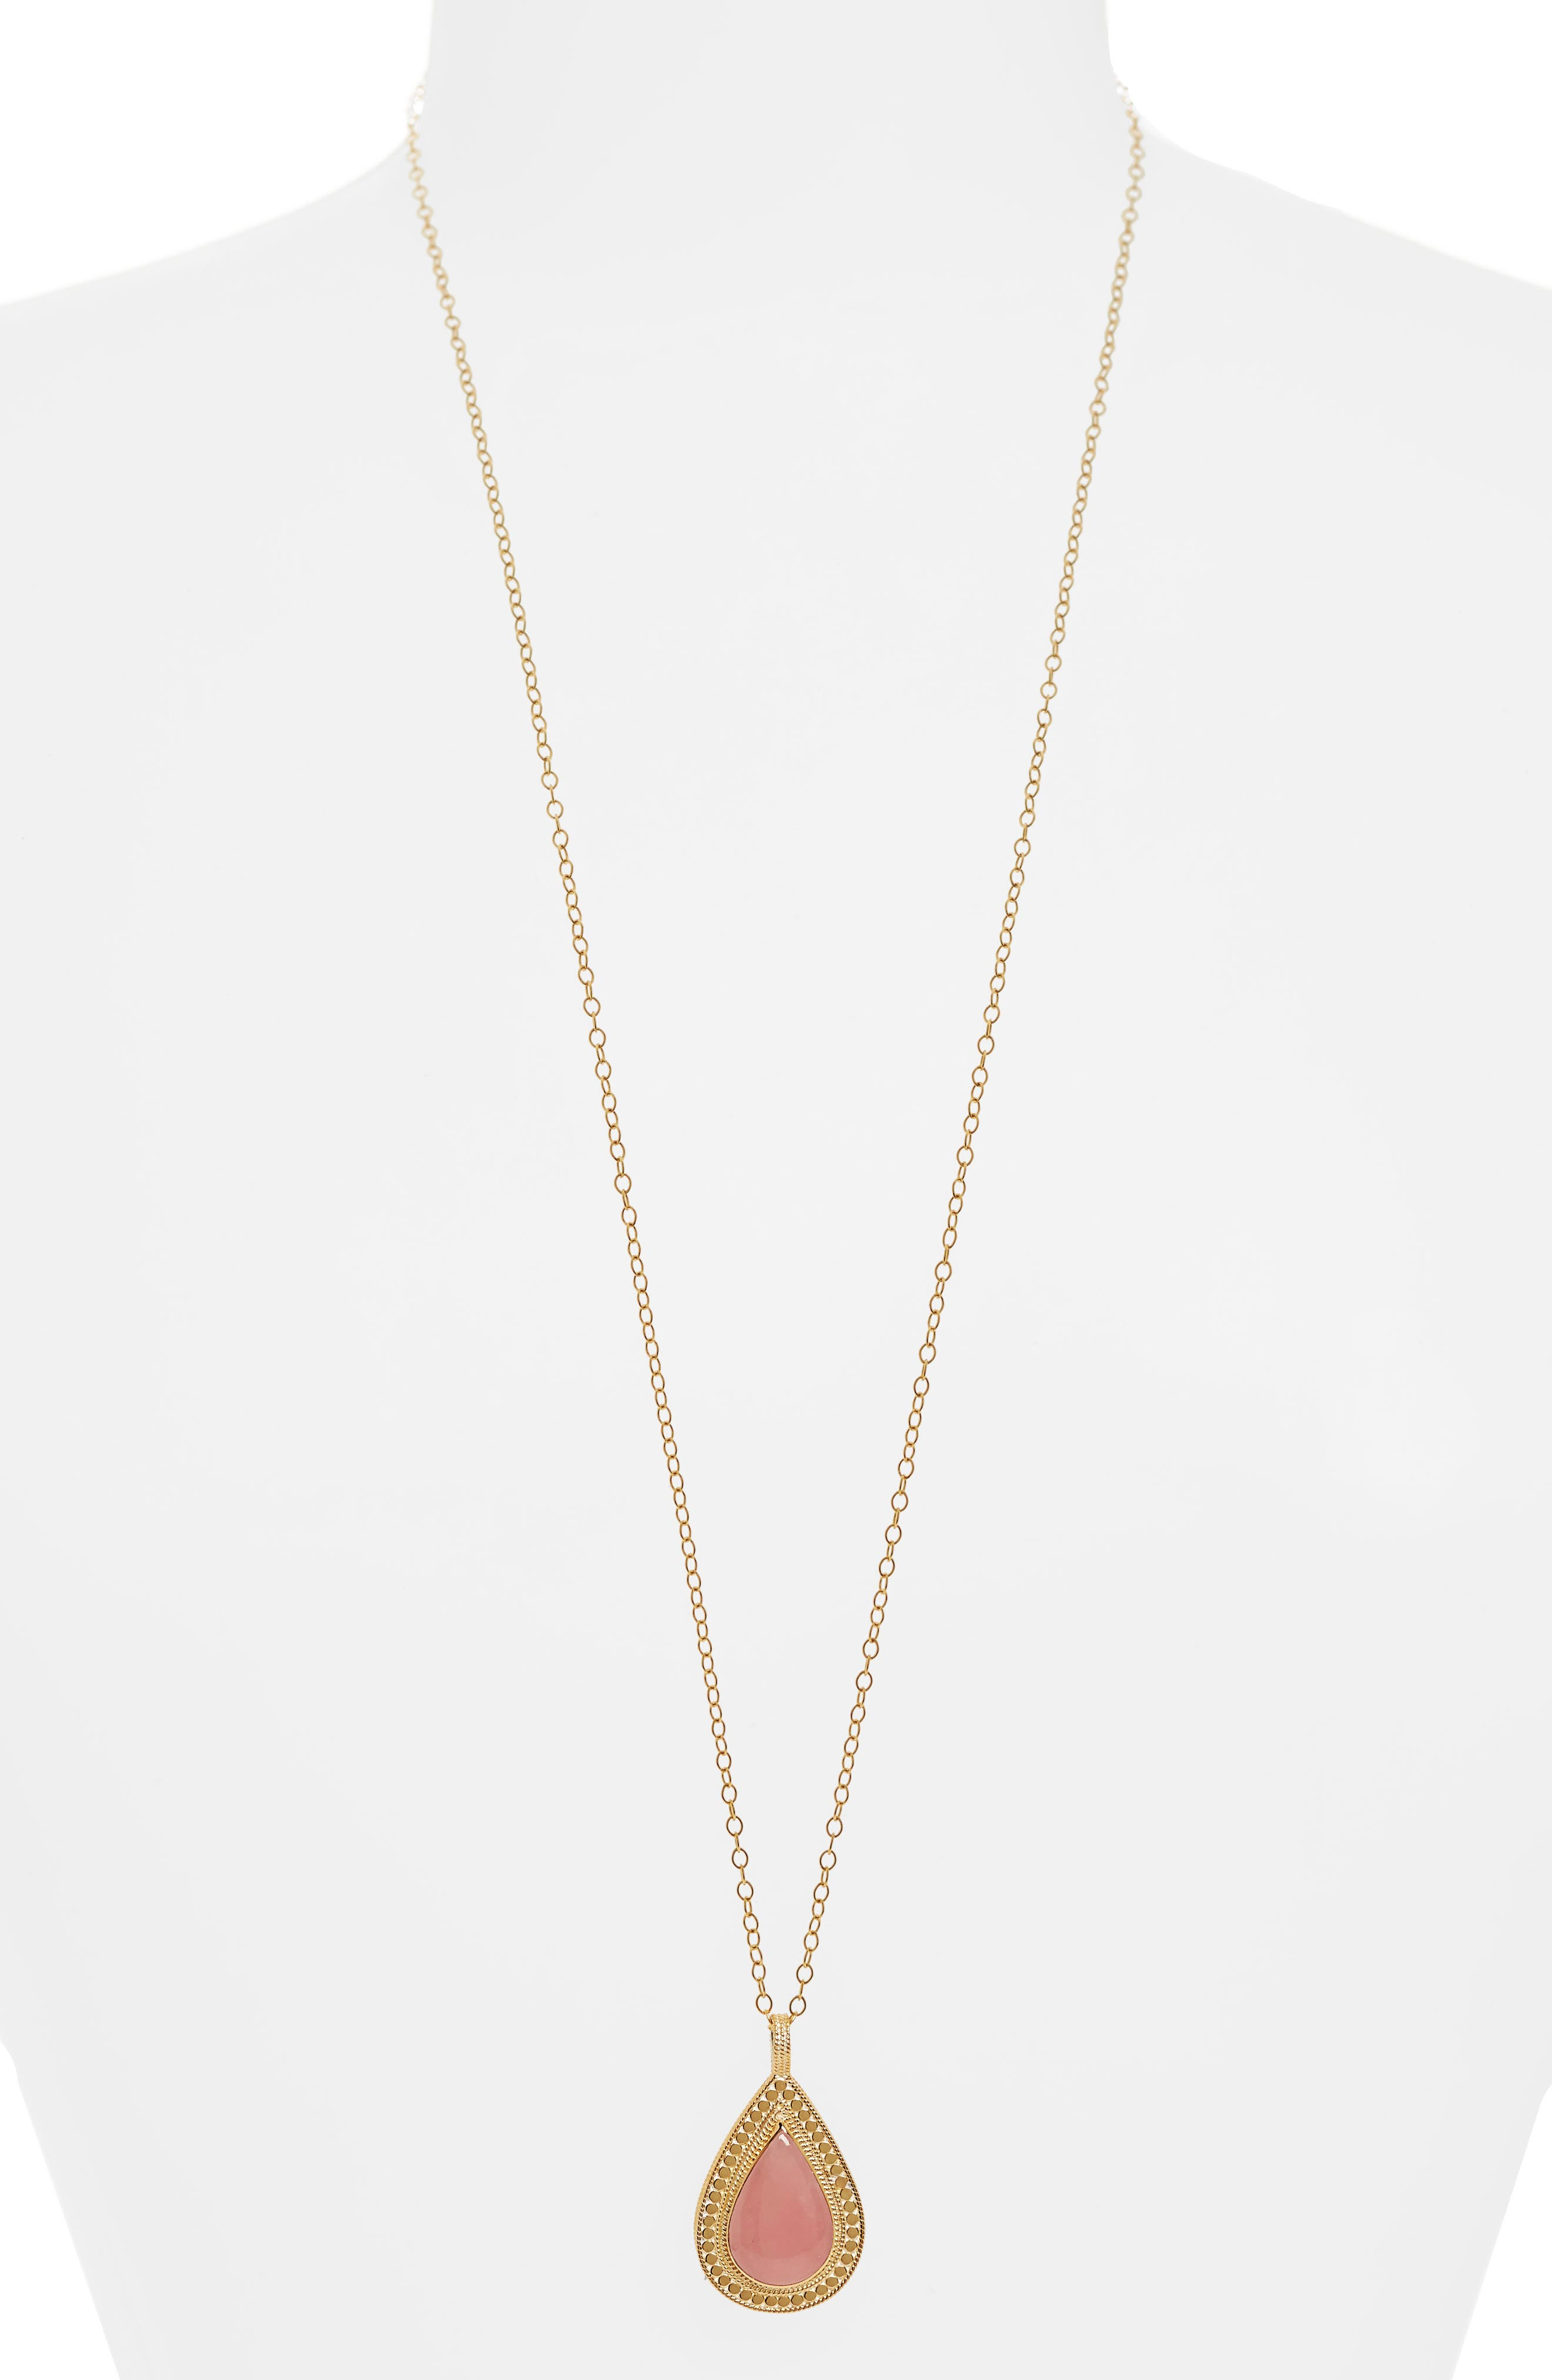 Main Image - Anna Beck Guava Quartz Double-Sided Necklace